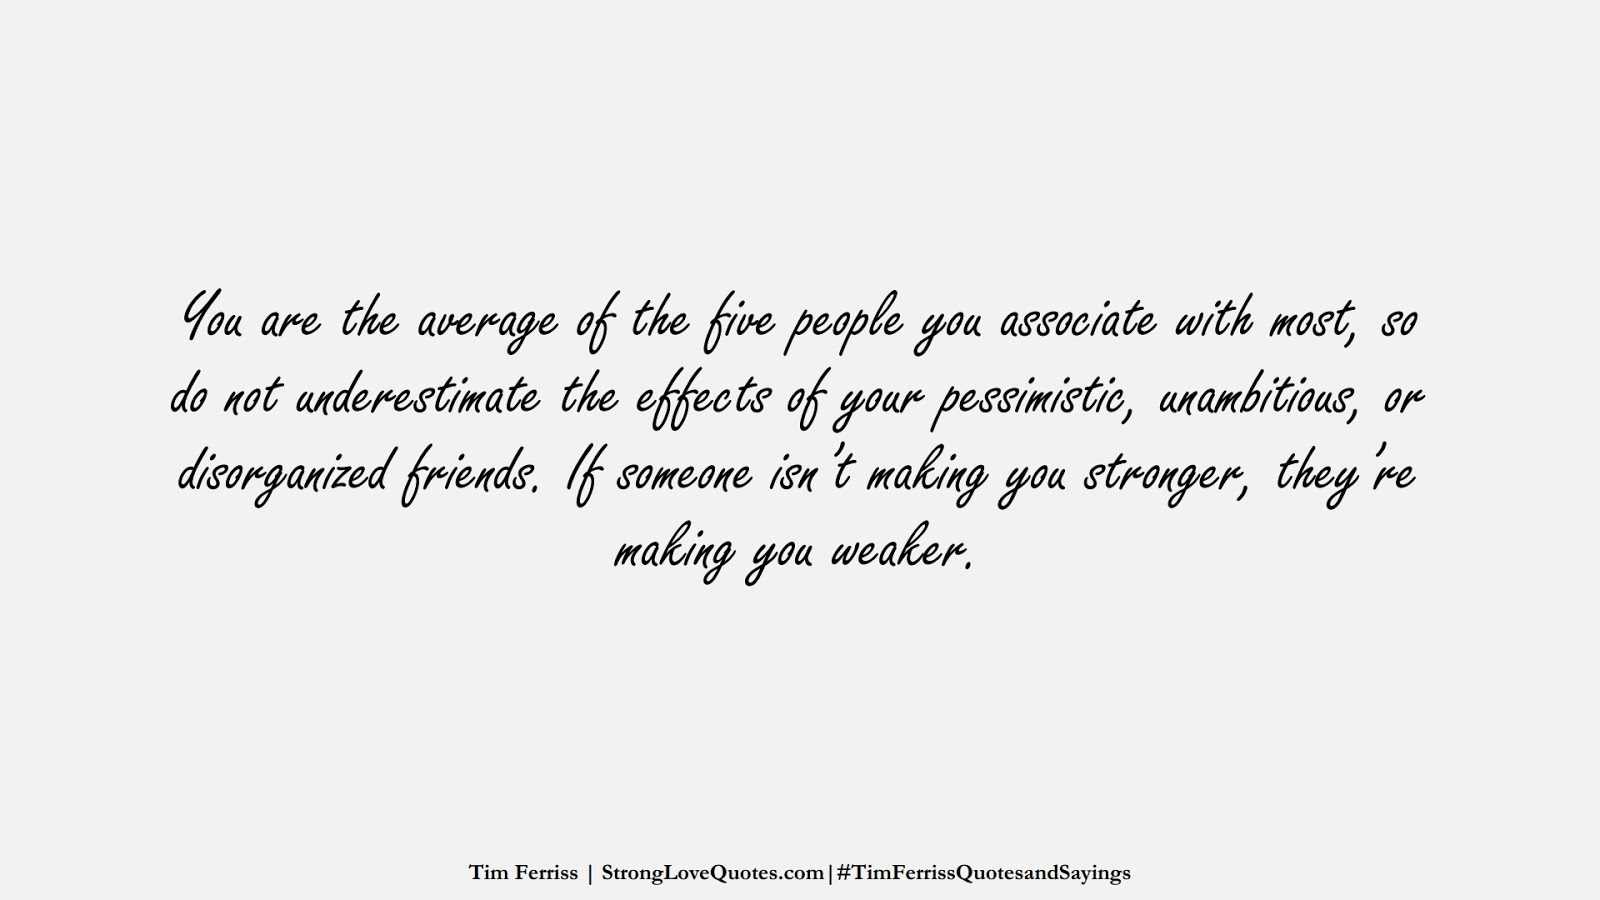 You are the average of the five people you associate with most, so do not underestimate the effects of your pessimistic, unambitious, or disorganized friends. If someone isn't making you stronger, they're making you weaker. (Tim Ferriss);  #TimFerrissQuotesandSayings